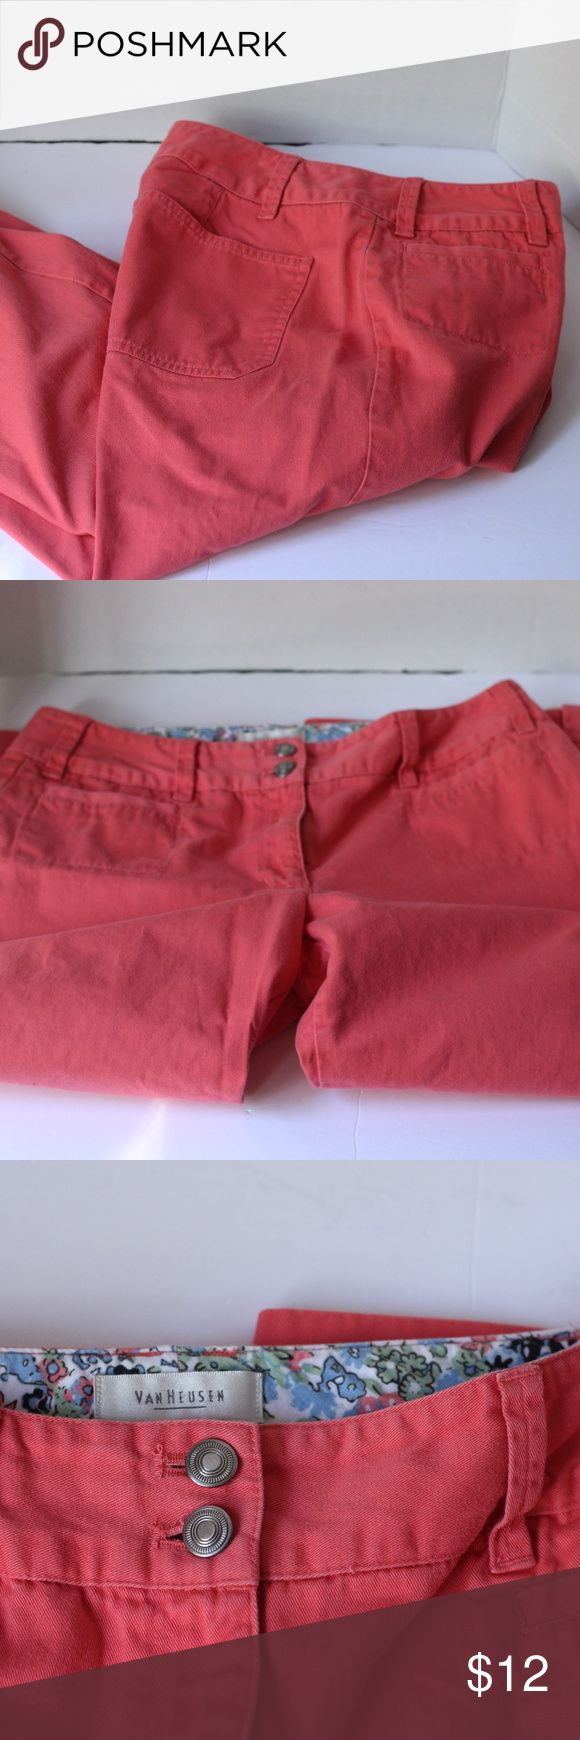 "Van Heusen Coral Capris Size 4 Pre-Loved but in Good Used Condition. Coral Capris, Size 4. Features silver buttons on the side of the bottom of legs.   Approx 31"" from waist to hem Inseam is Approx 21"" Waist is approx. 15"" when laying flat Boot is approx. 8"" wide. Van Heusen Pants Capris"